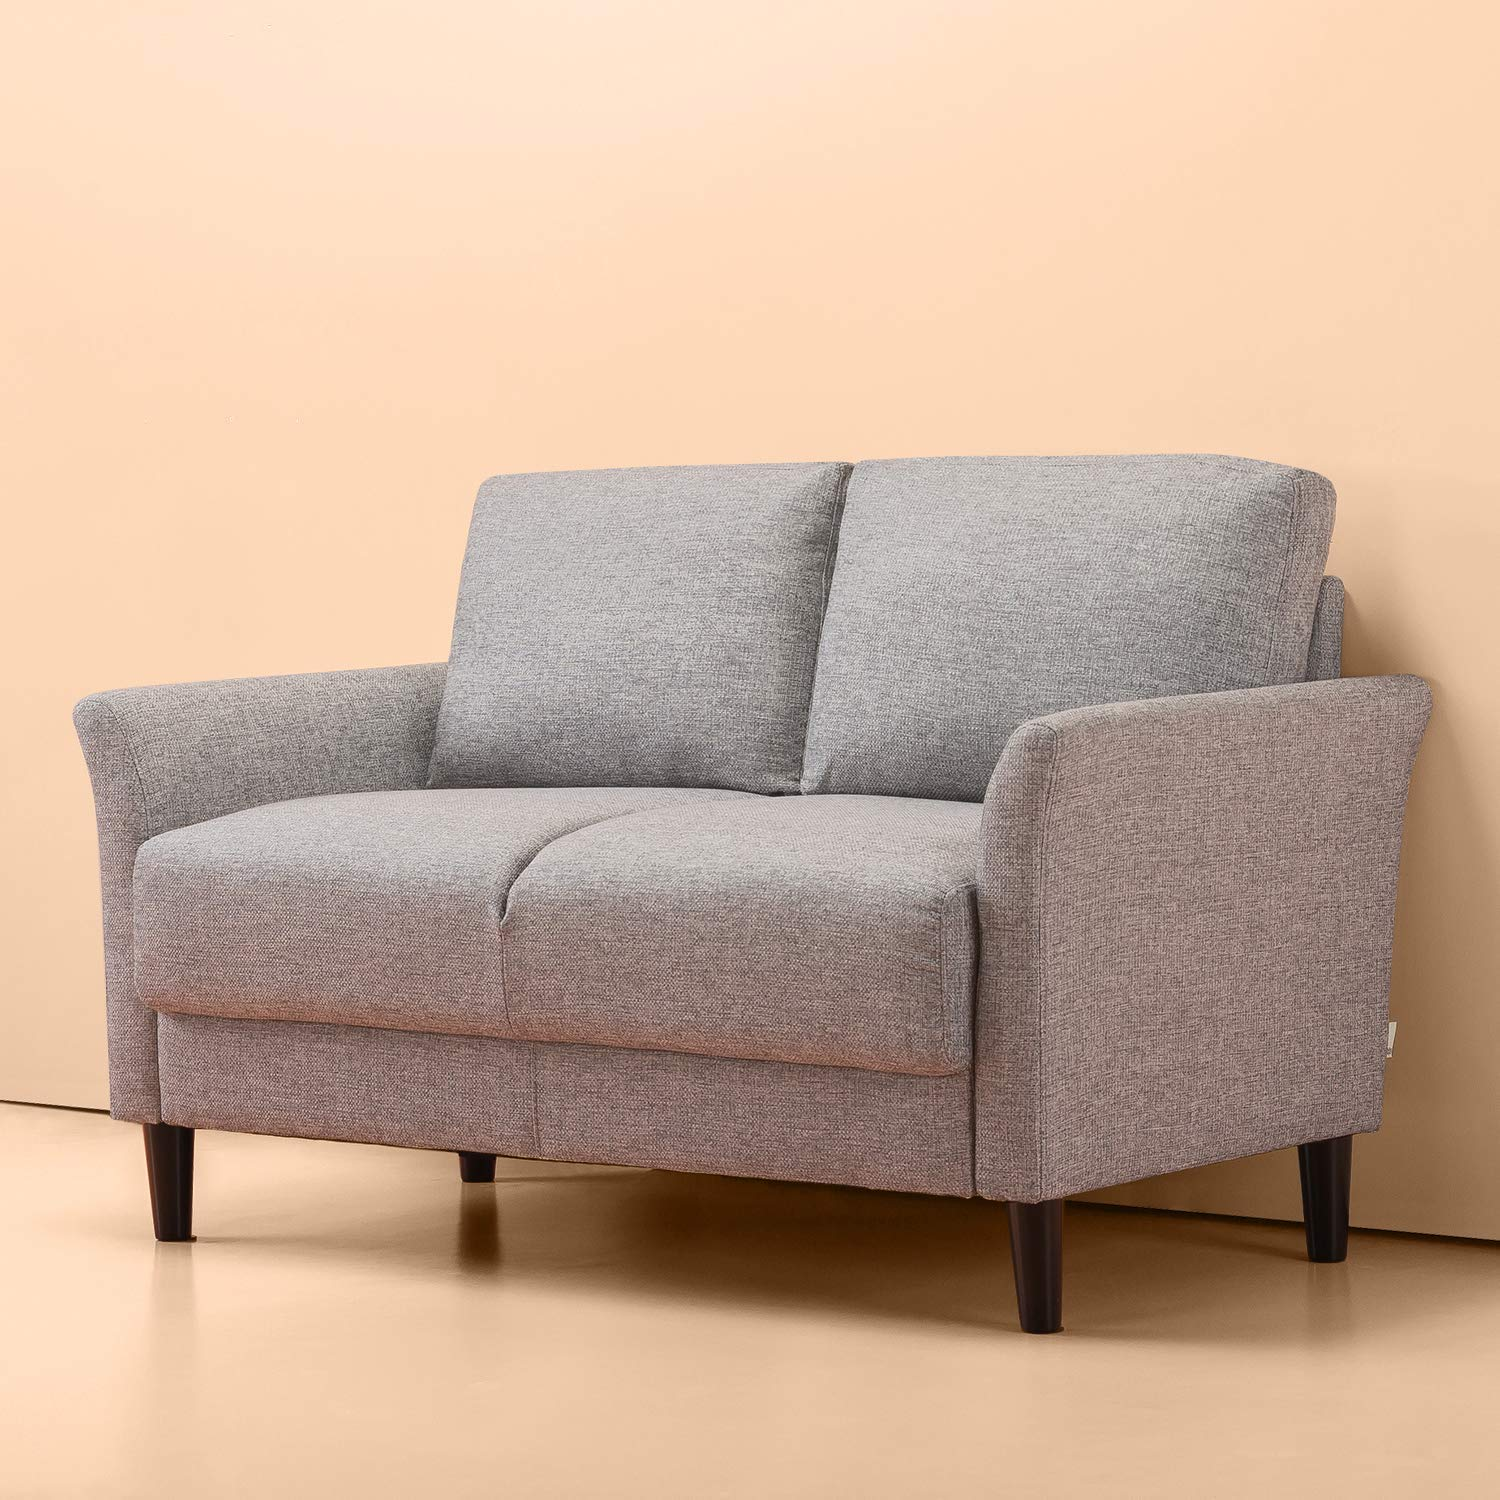 Sofas Archives Cozy Home 101